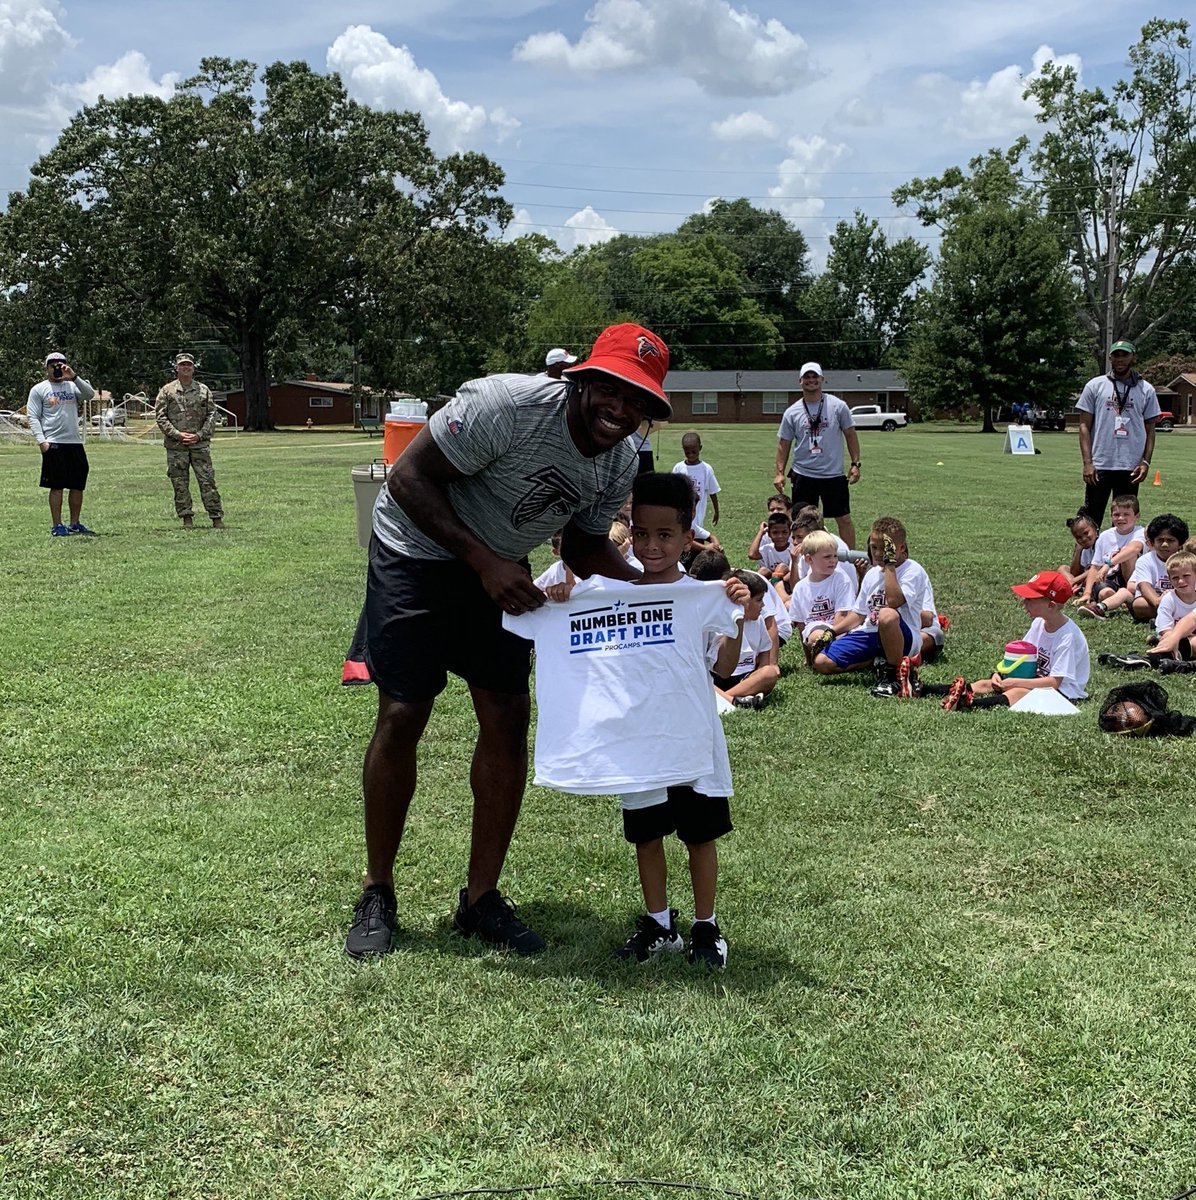 Out here at @FortBenning  for the @Keanu_Neal  @ProcterGamble  @YourCommissary  & @ExchangePAO  ProCamp with our #1  draft pick #salute  #heroic  #resilient  #falcons